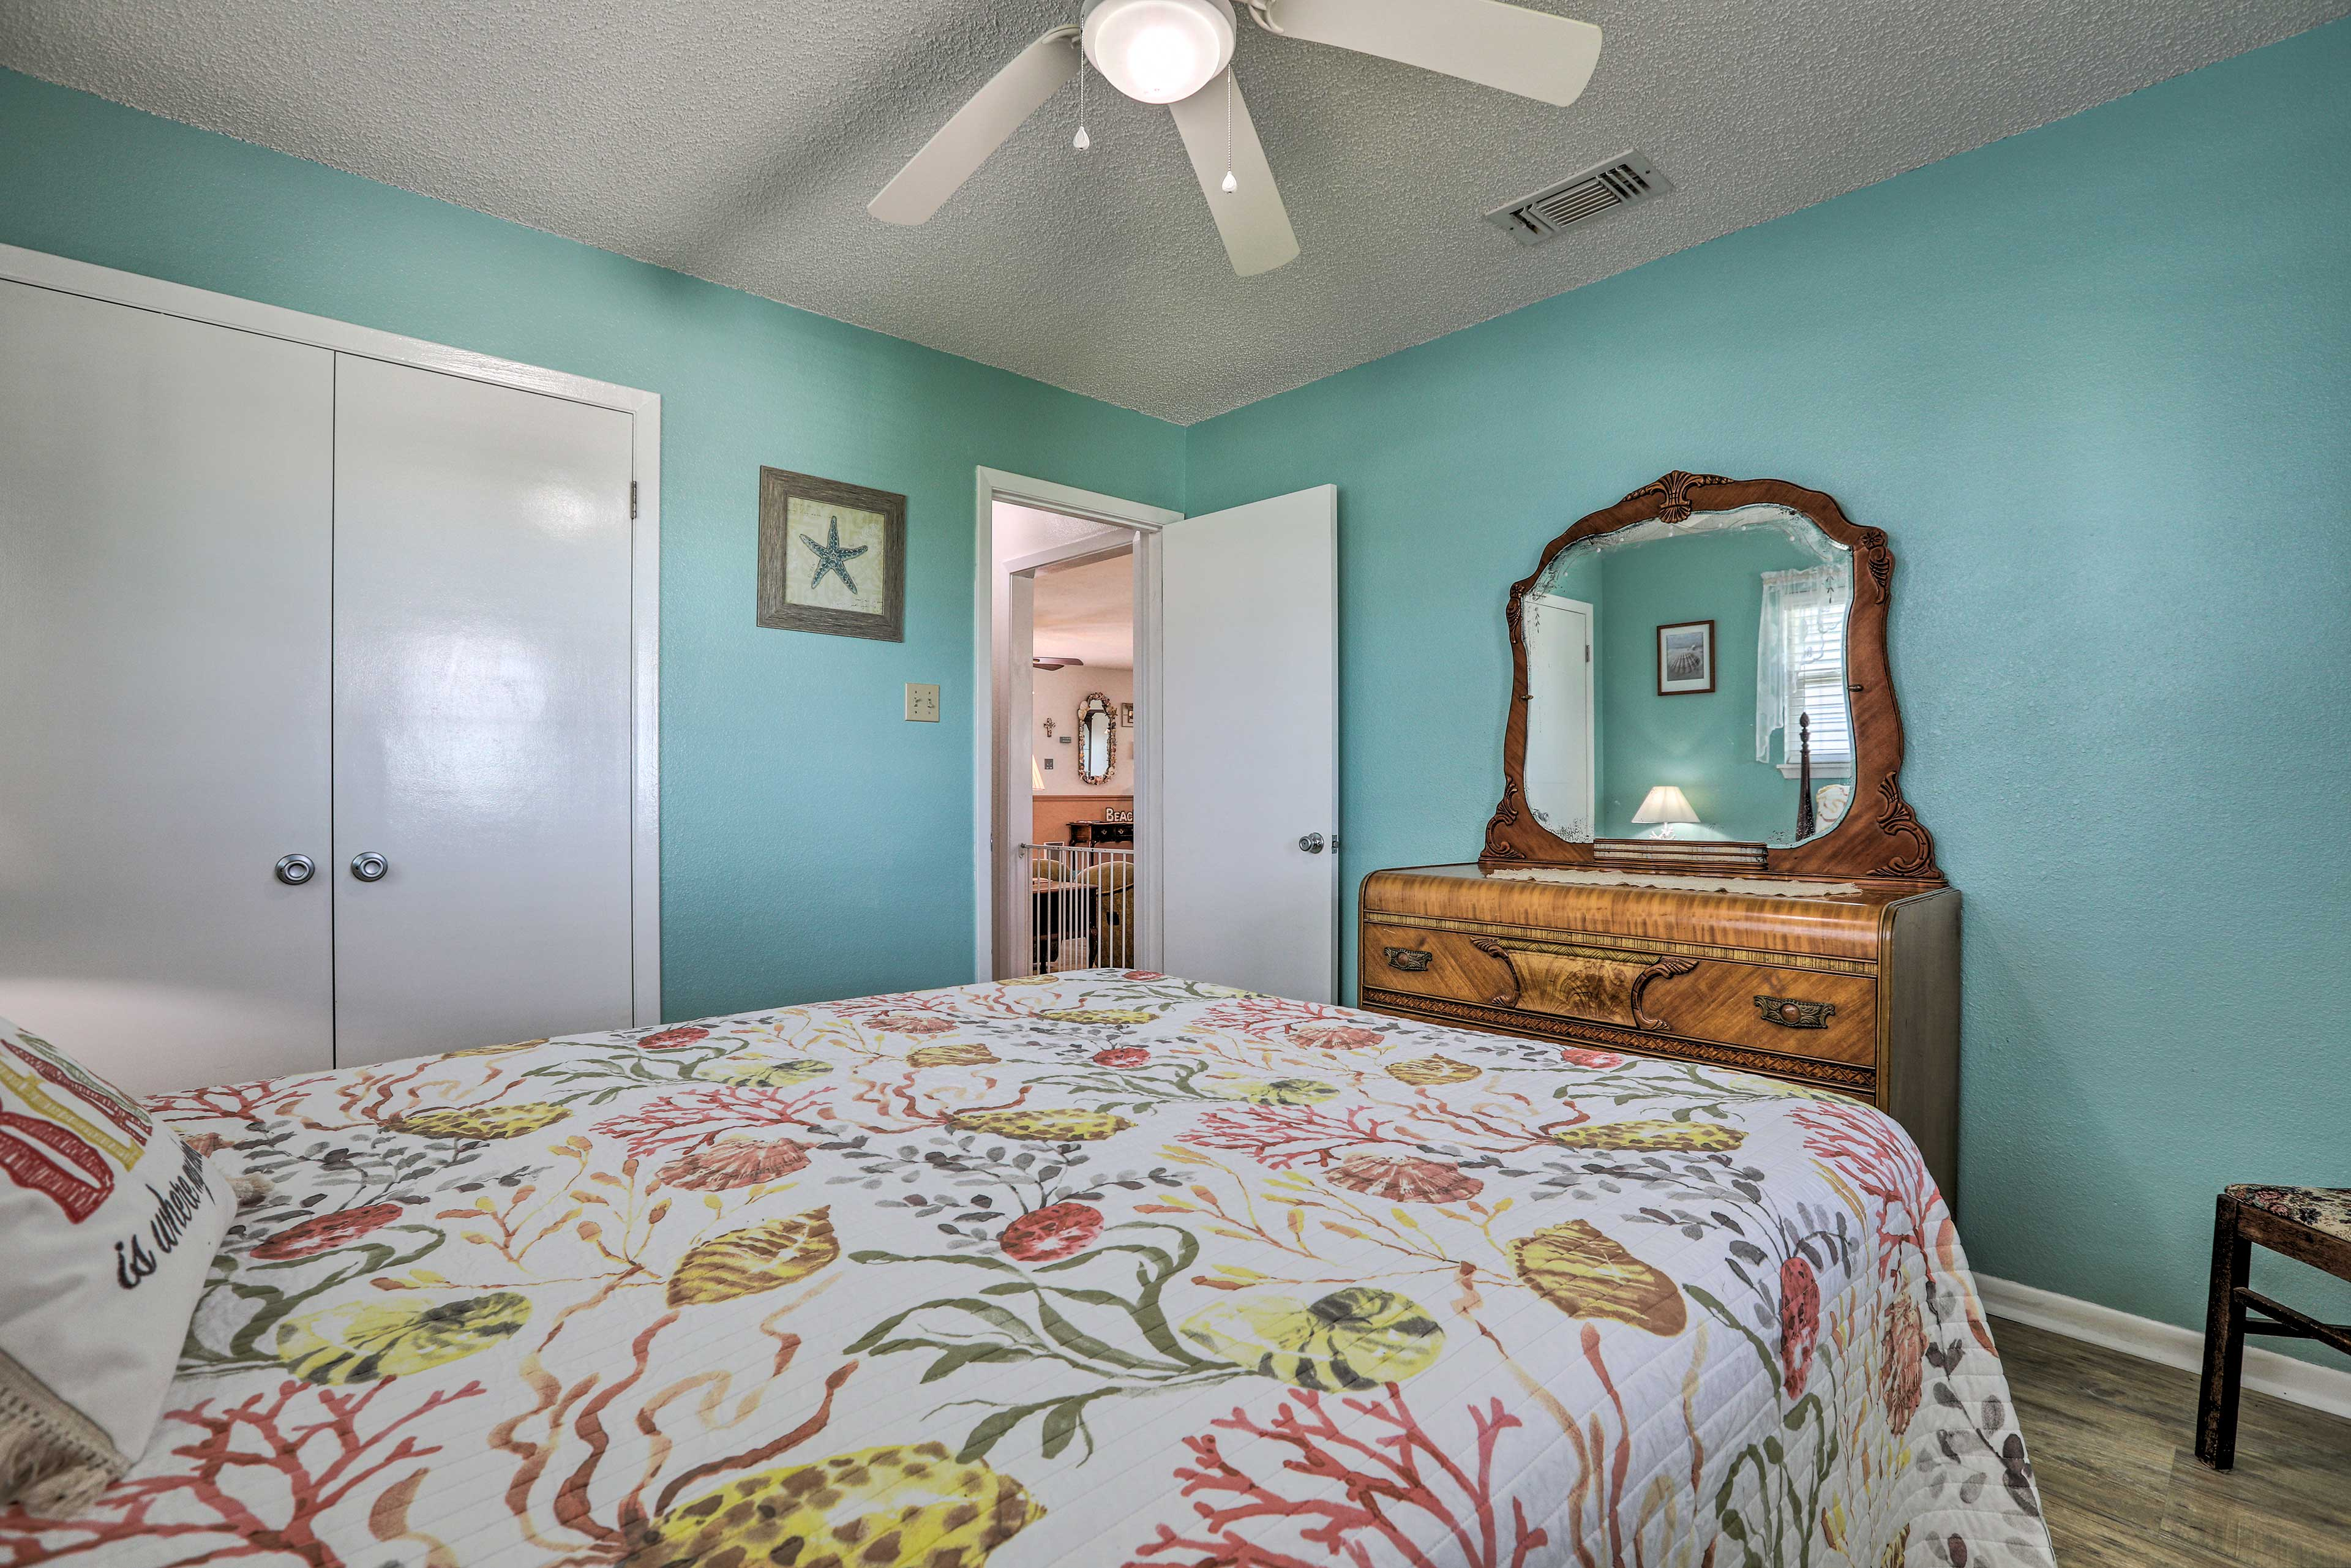 Drift off into dreamland in one of the 3 well-appointed bedrooms.